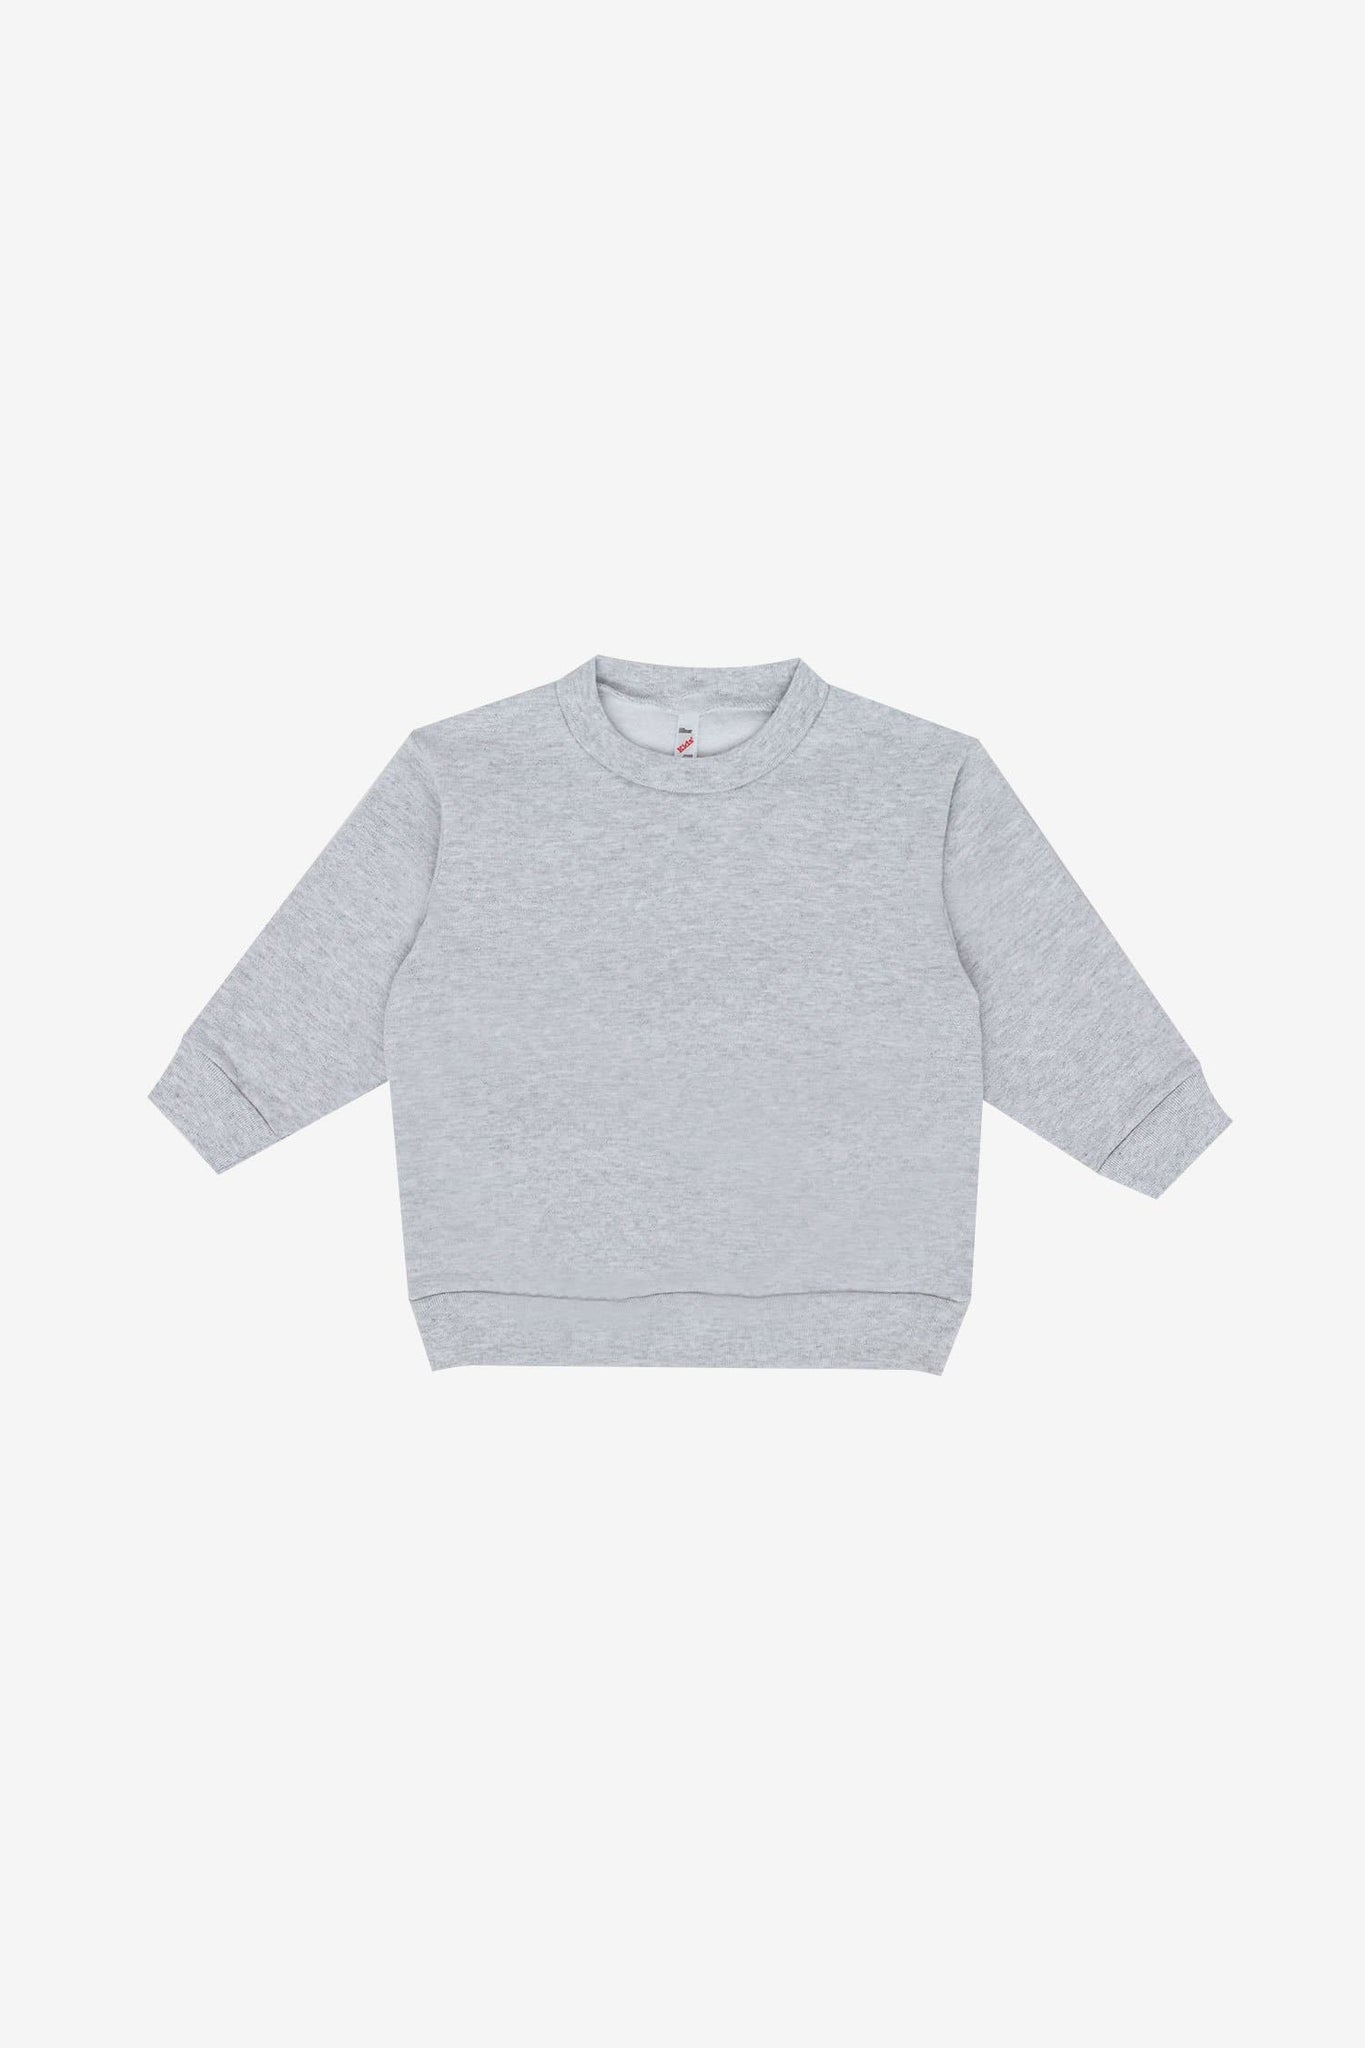 HF-107 - Toddler Heavy Fleece Crewneck Sweatshirt